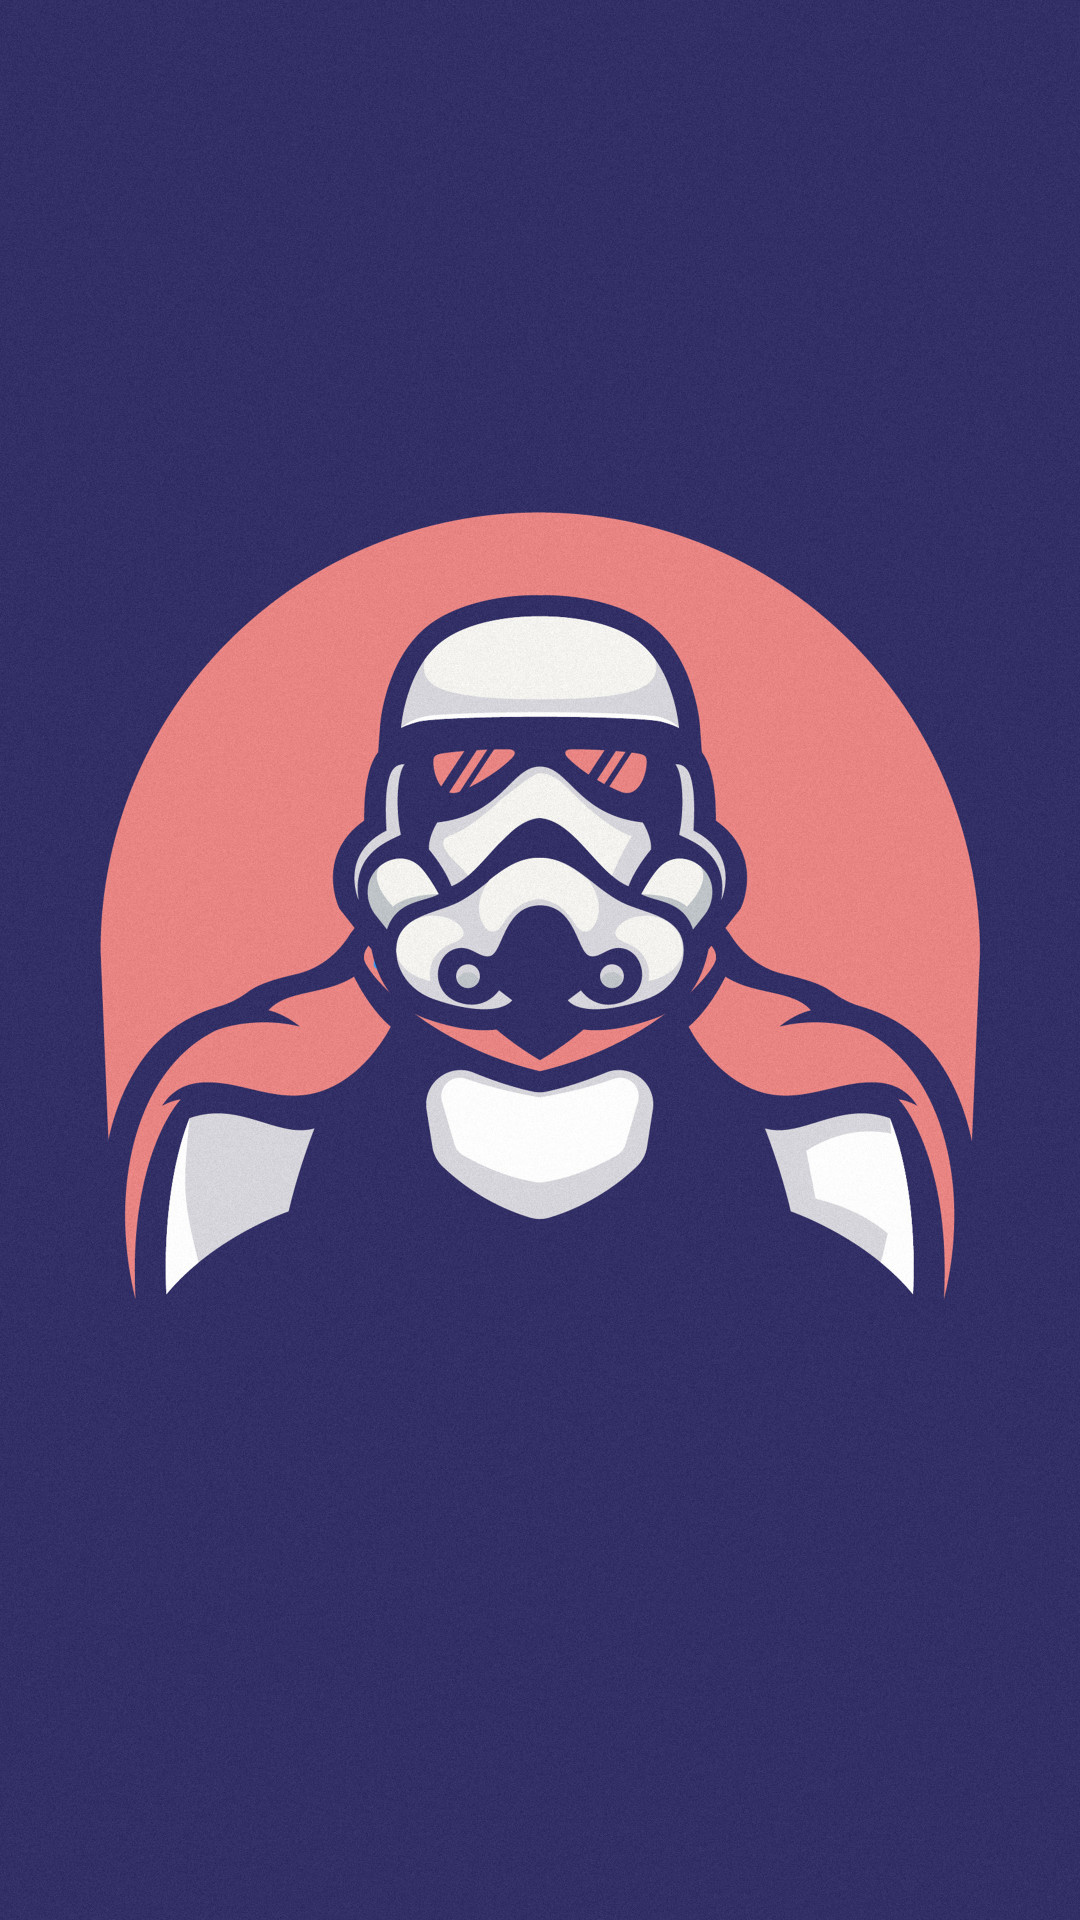 Cool Wallpaper Minimalist Star Wars 1080x1920 Wallpaper Teahub Io